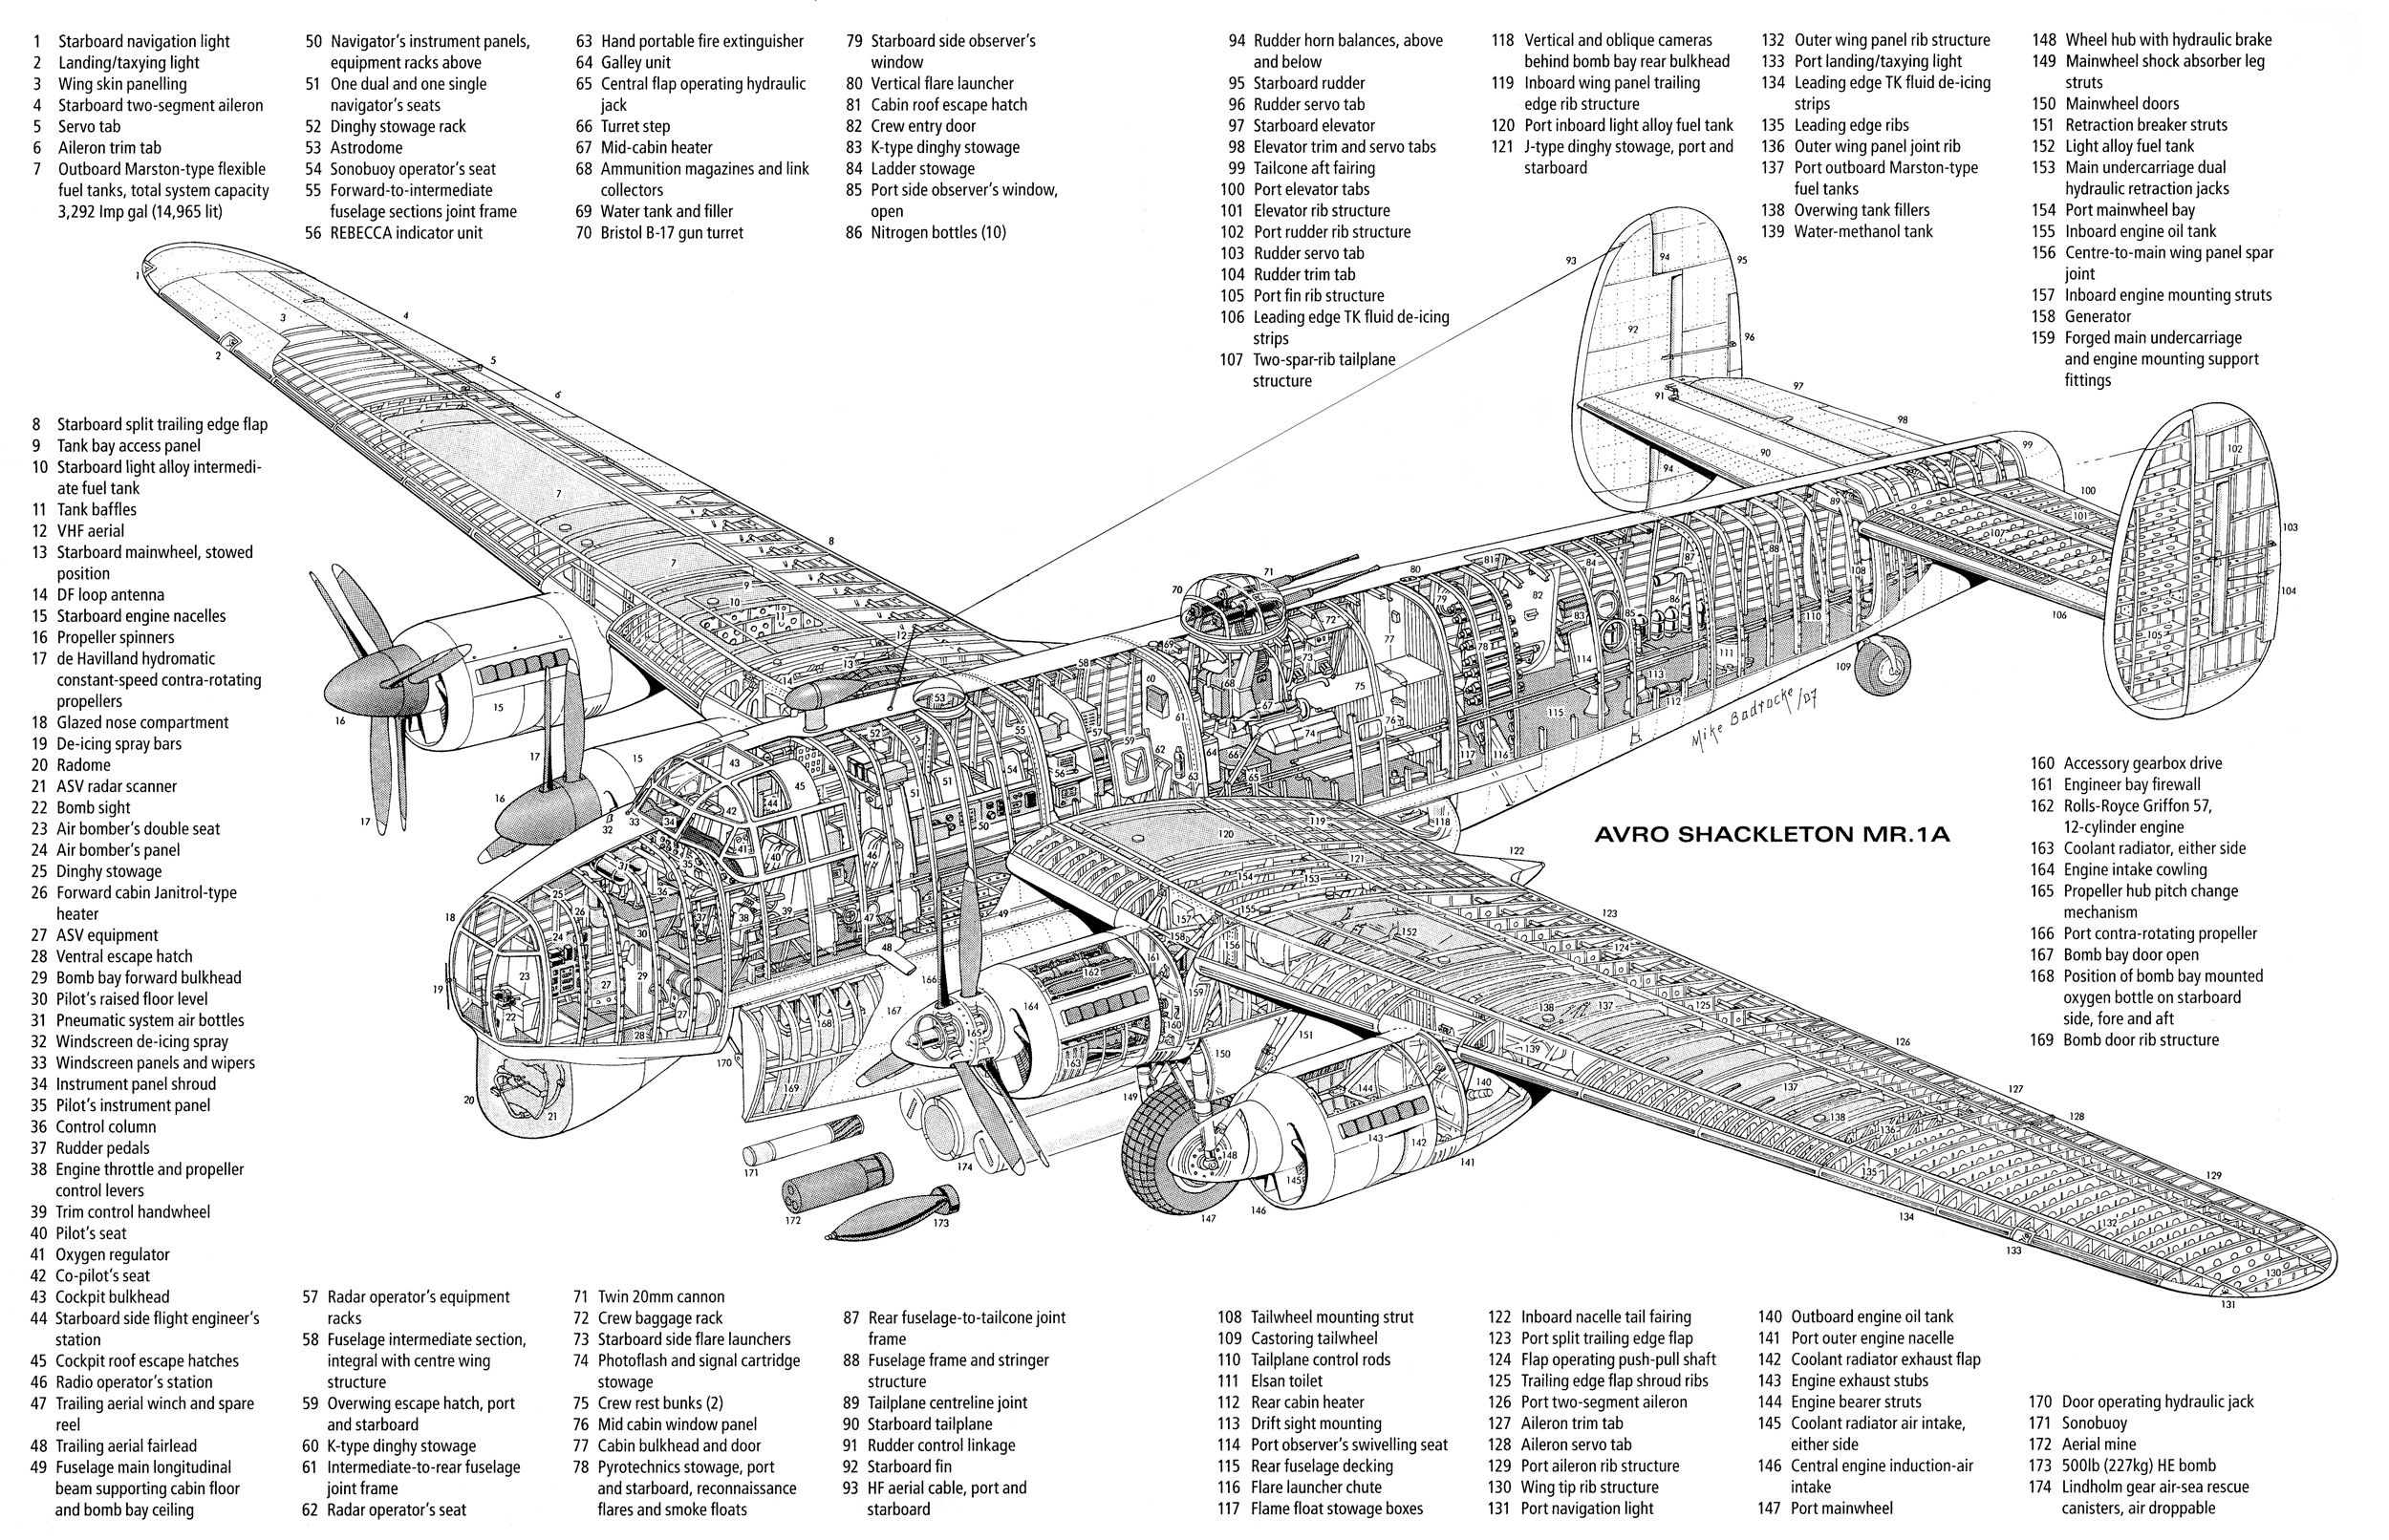 Image Result For Avro Shackleton